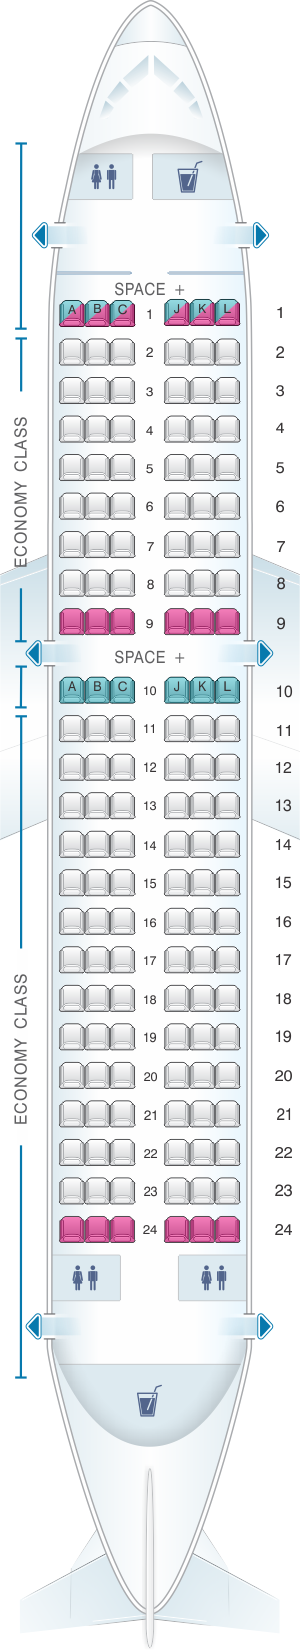 Seat map for LATAM Airlines Airbus A319